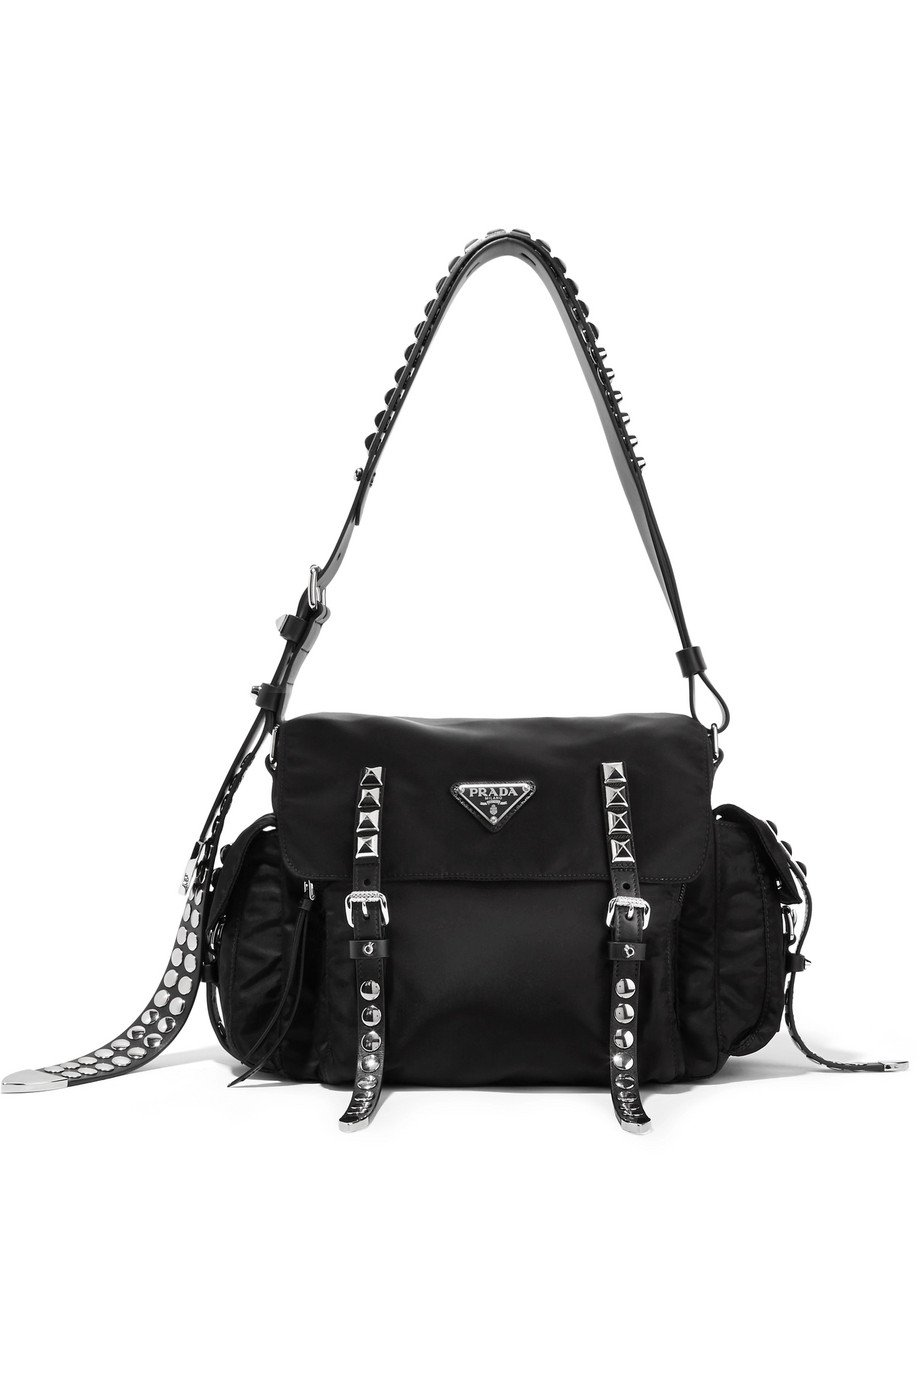 Prada | Studded leather-trimmed shell shoulder bag | NET-A-PORTER.COM